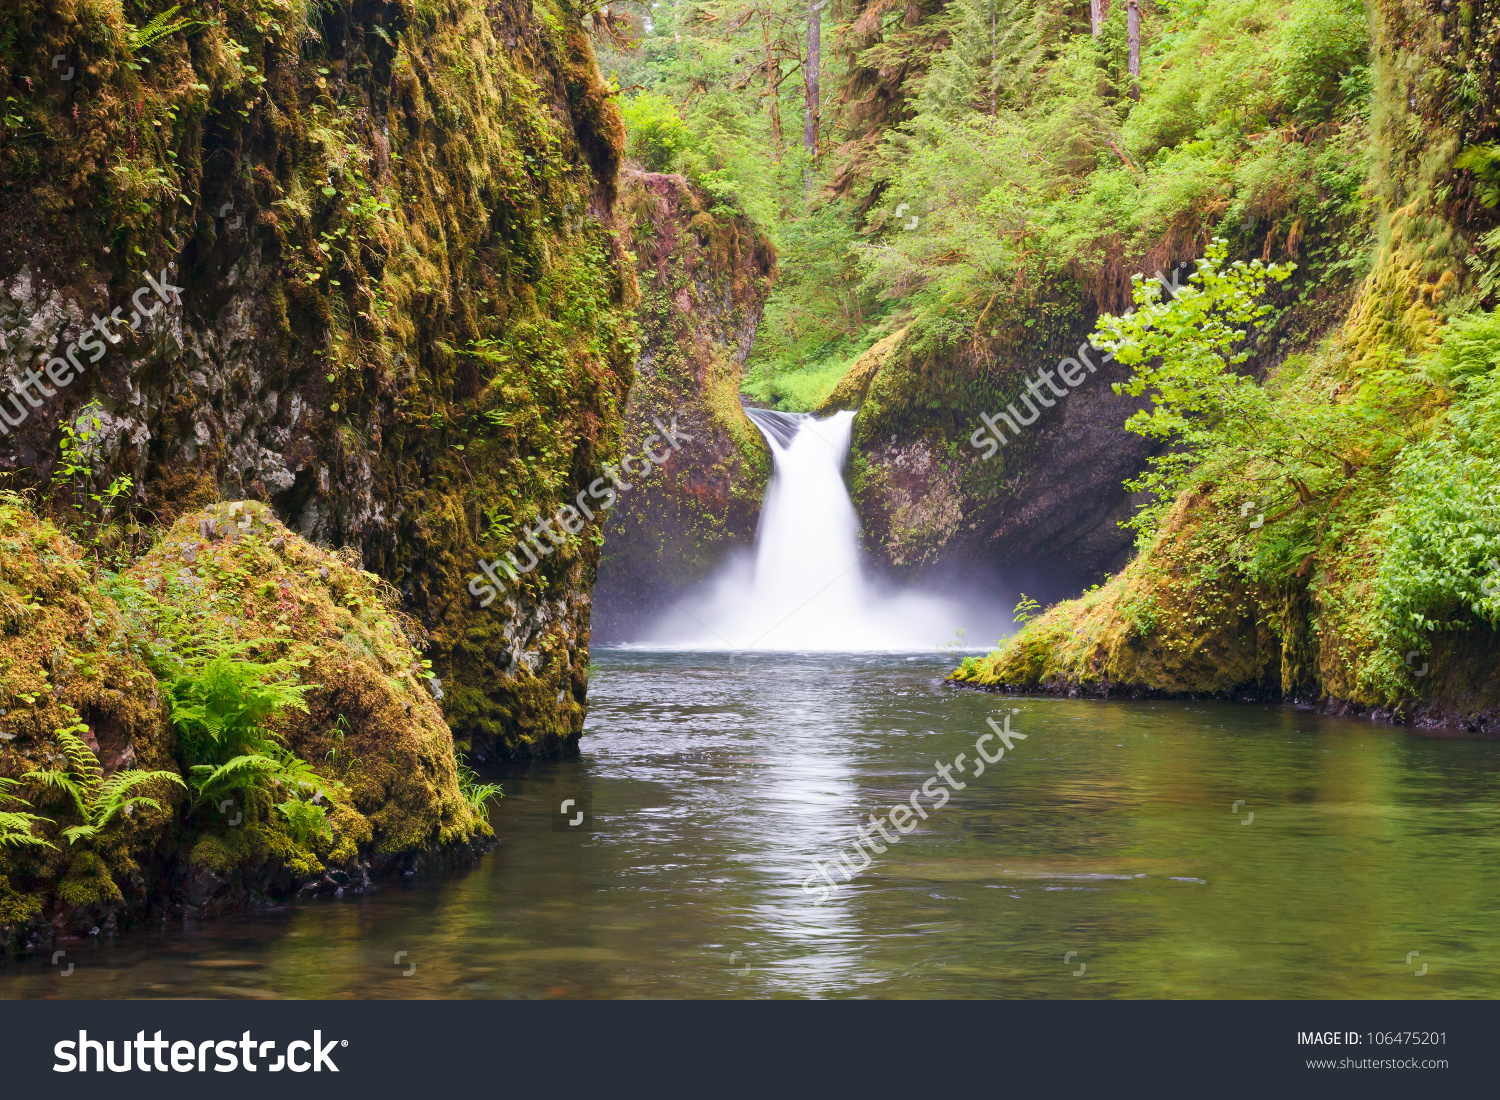 Punch Bowl Falls clipart #7, Download drawings